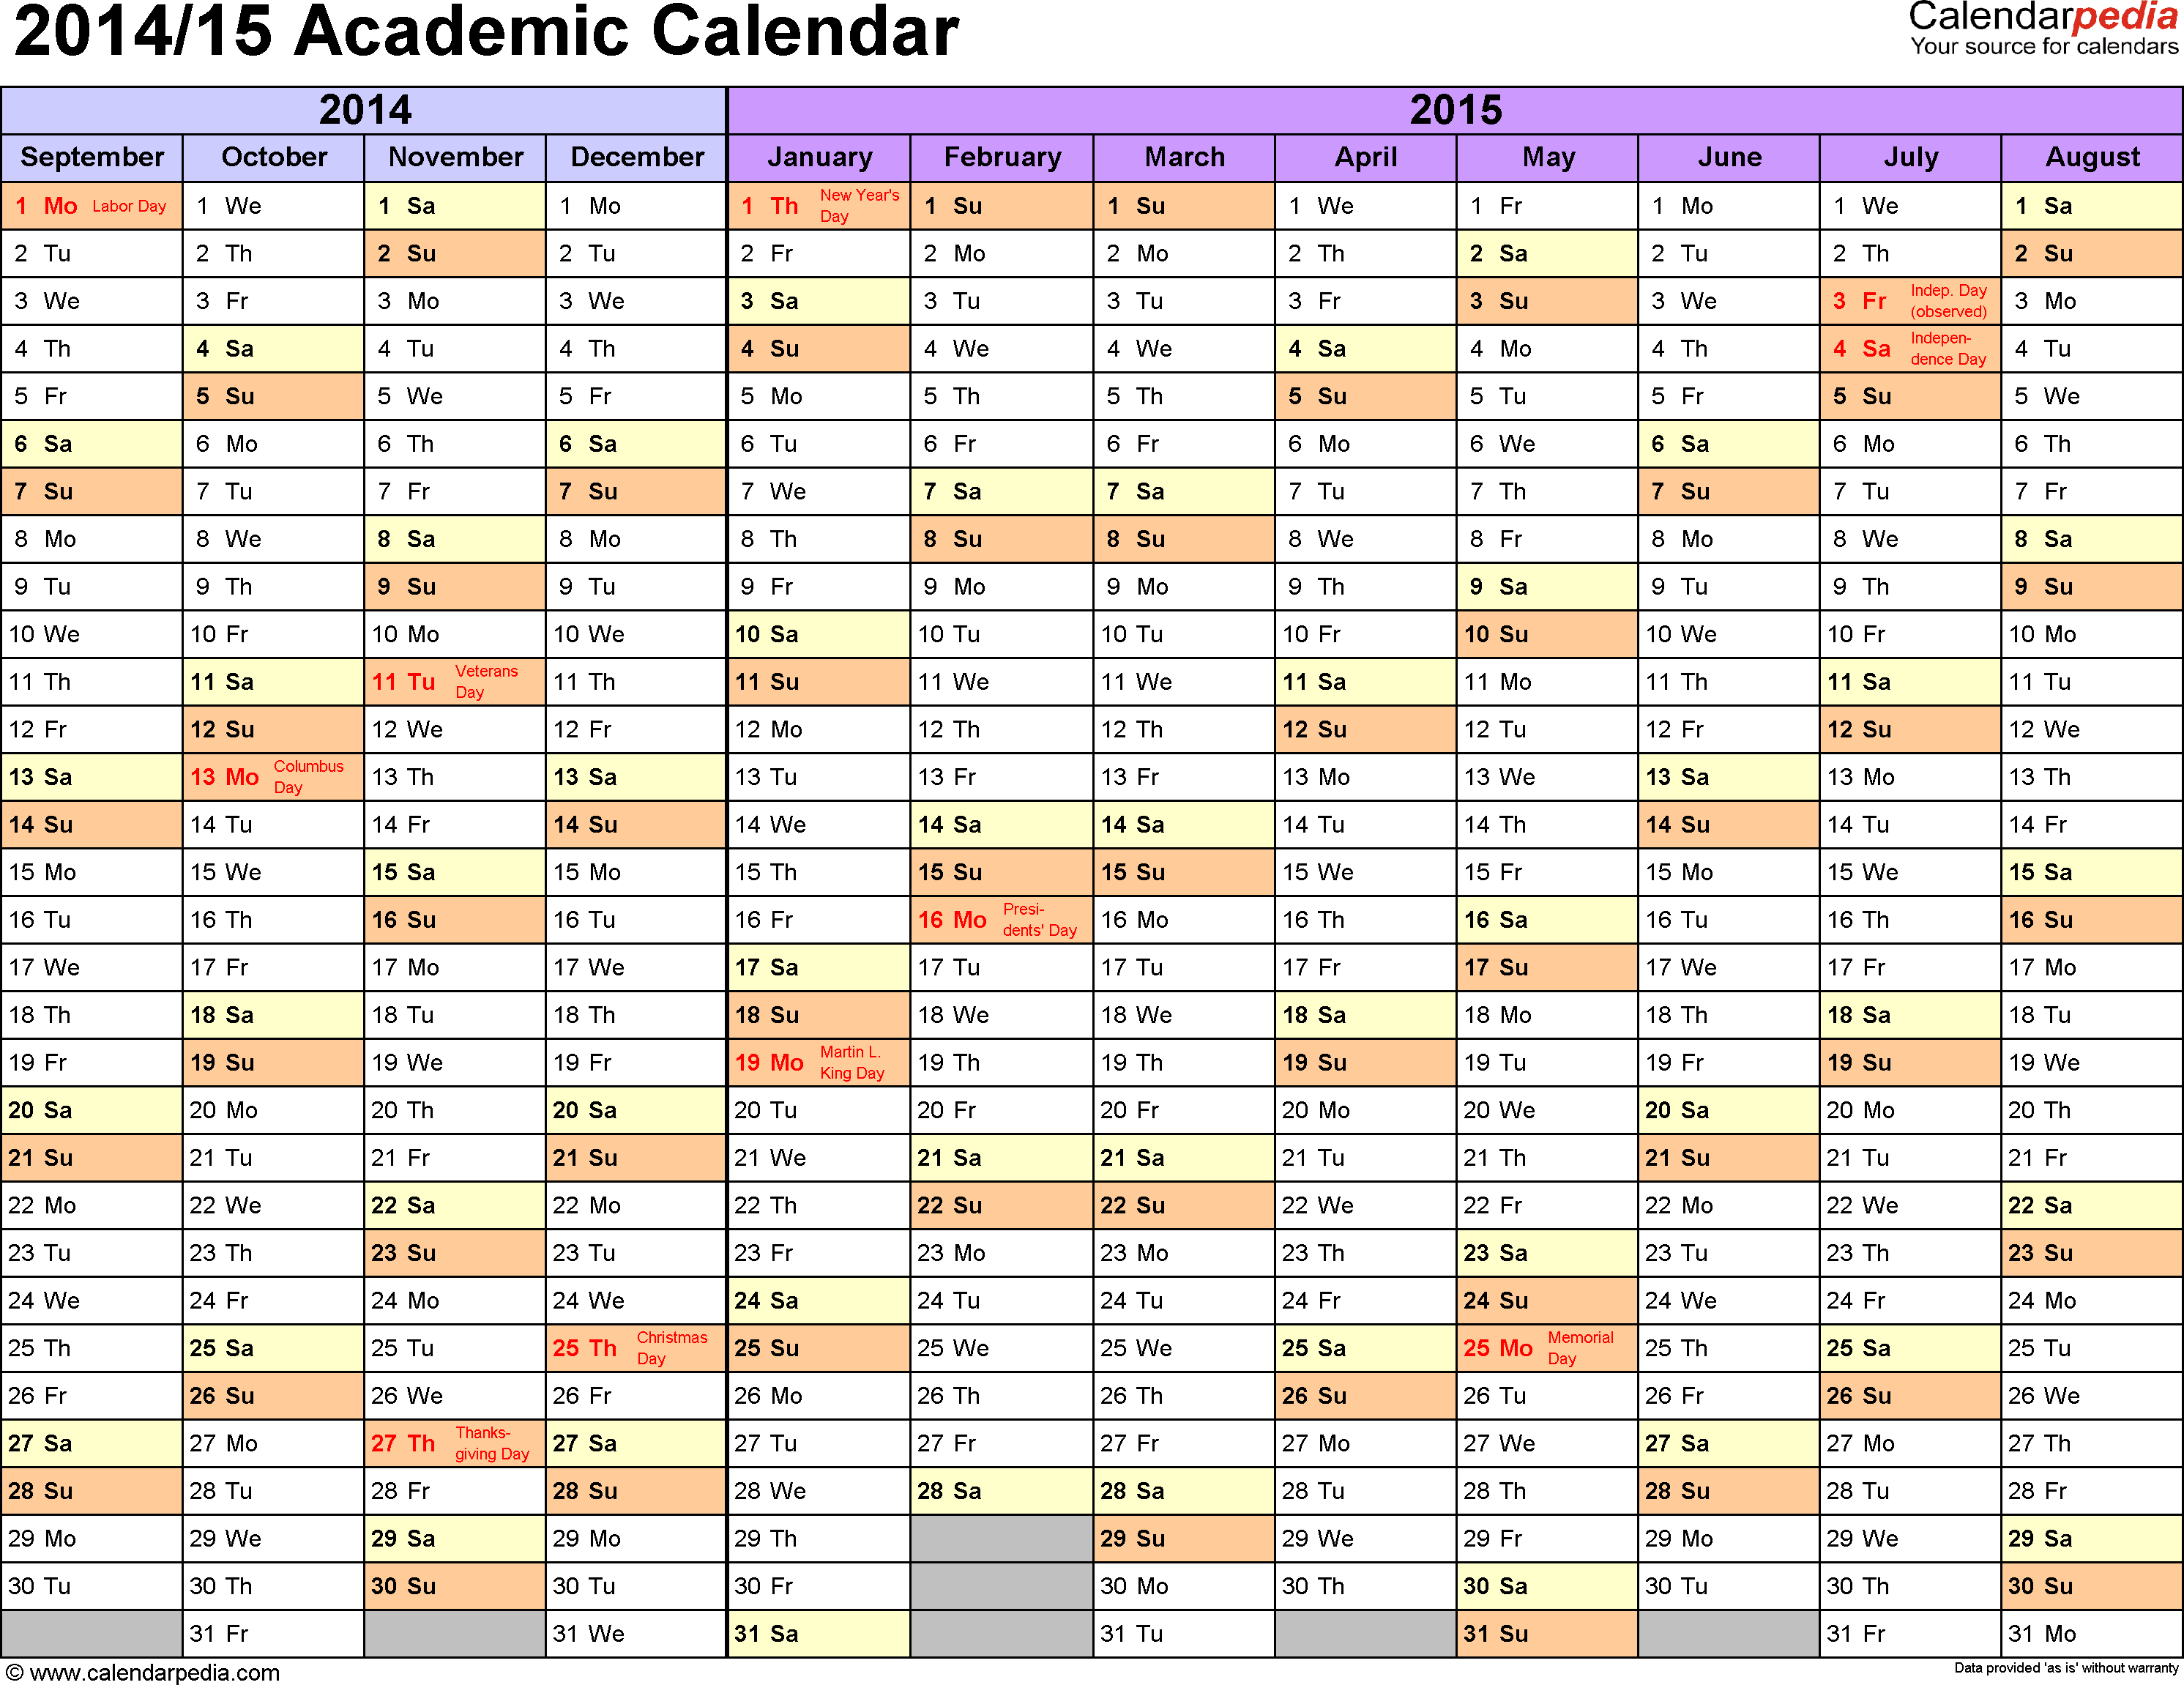 Template 1: Academic calendar 2014/15 for Excel, landscape orientation, months horizontally, 1 page